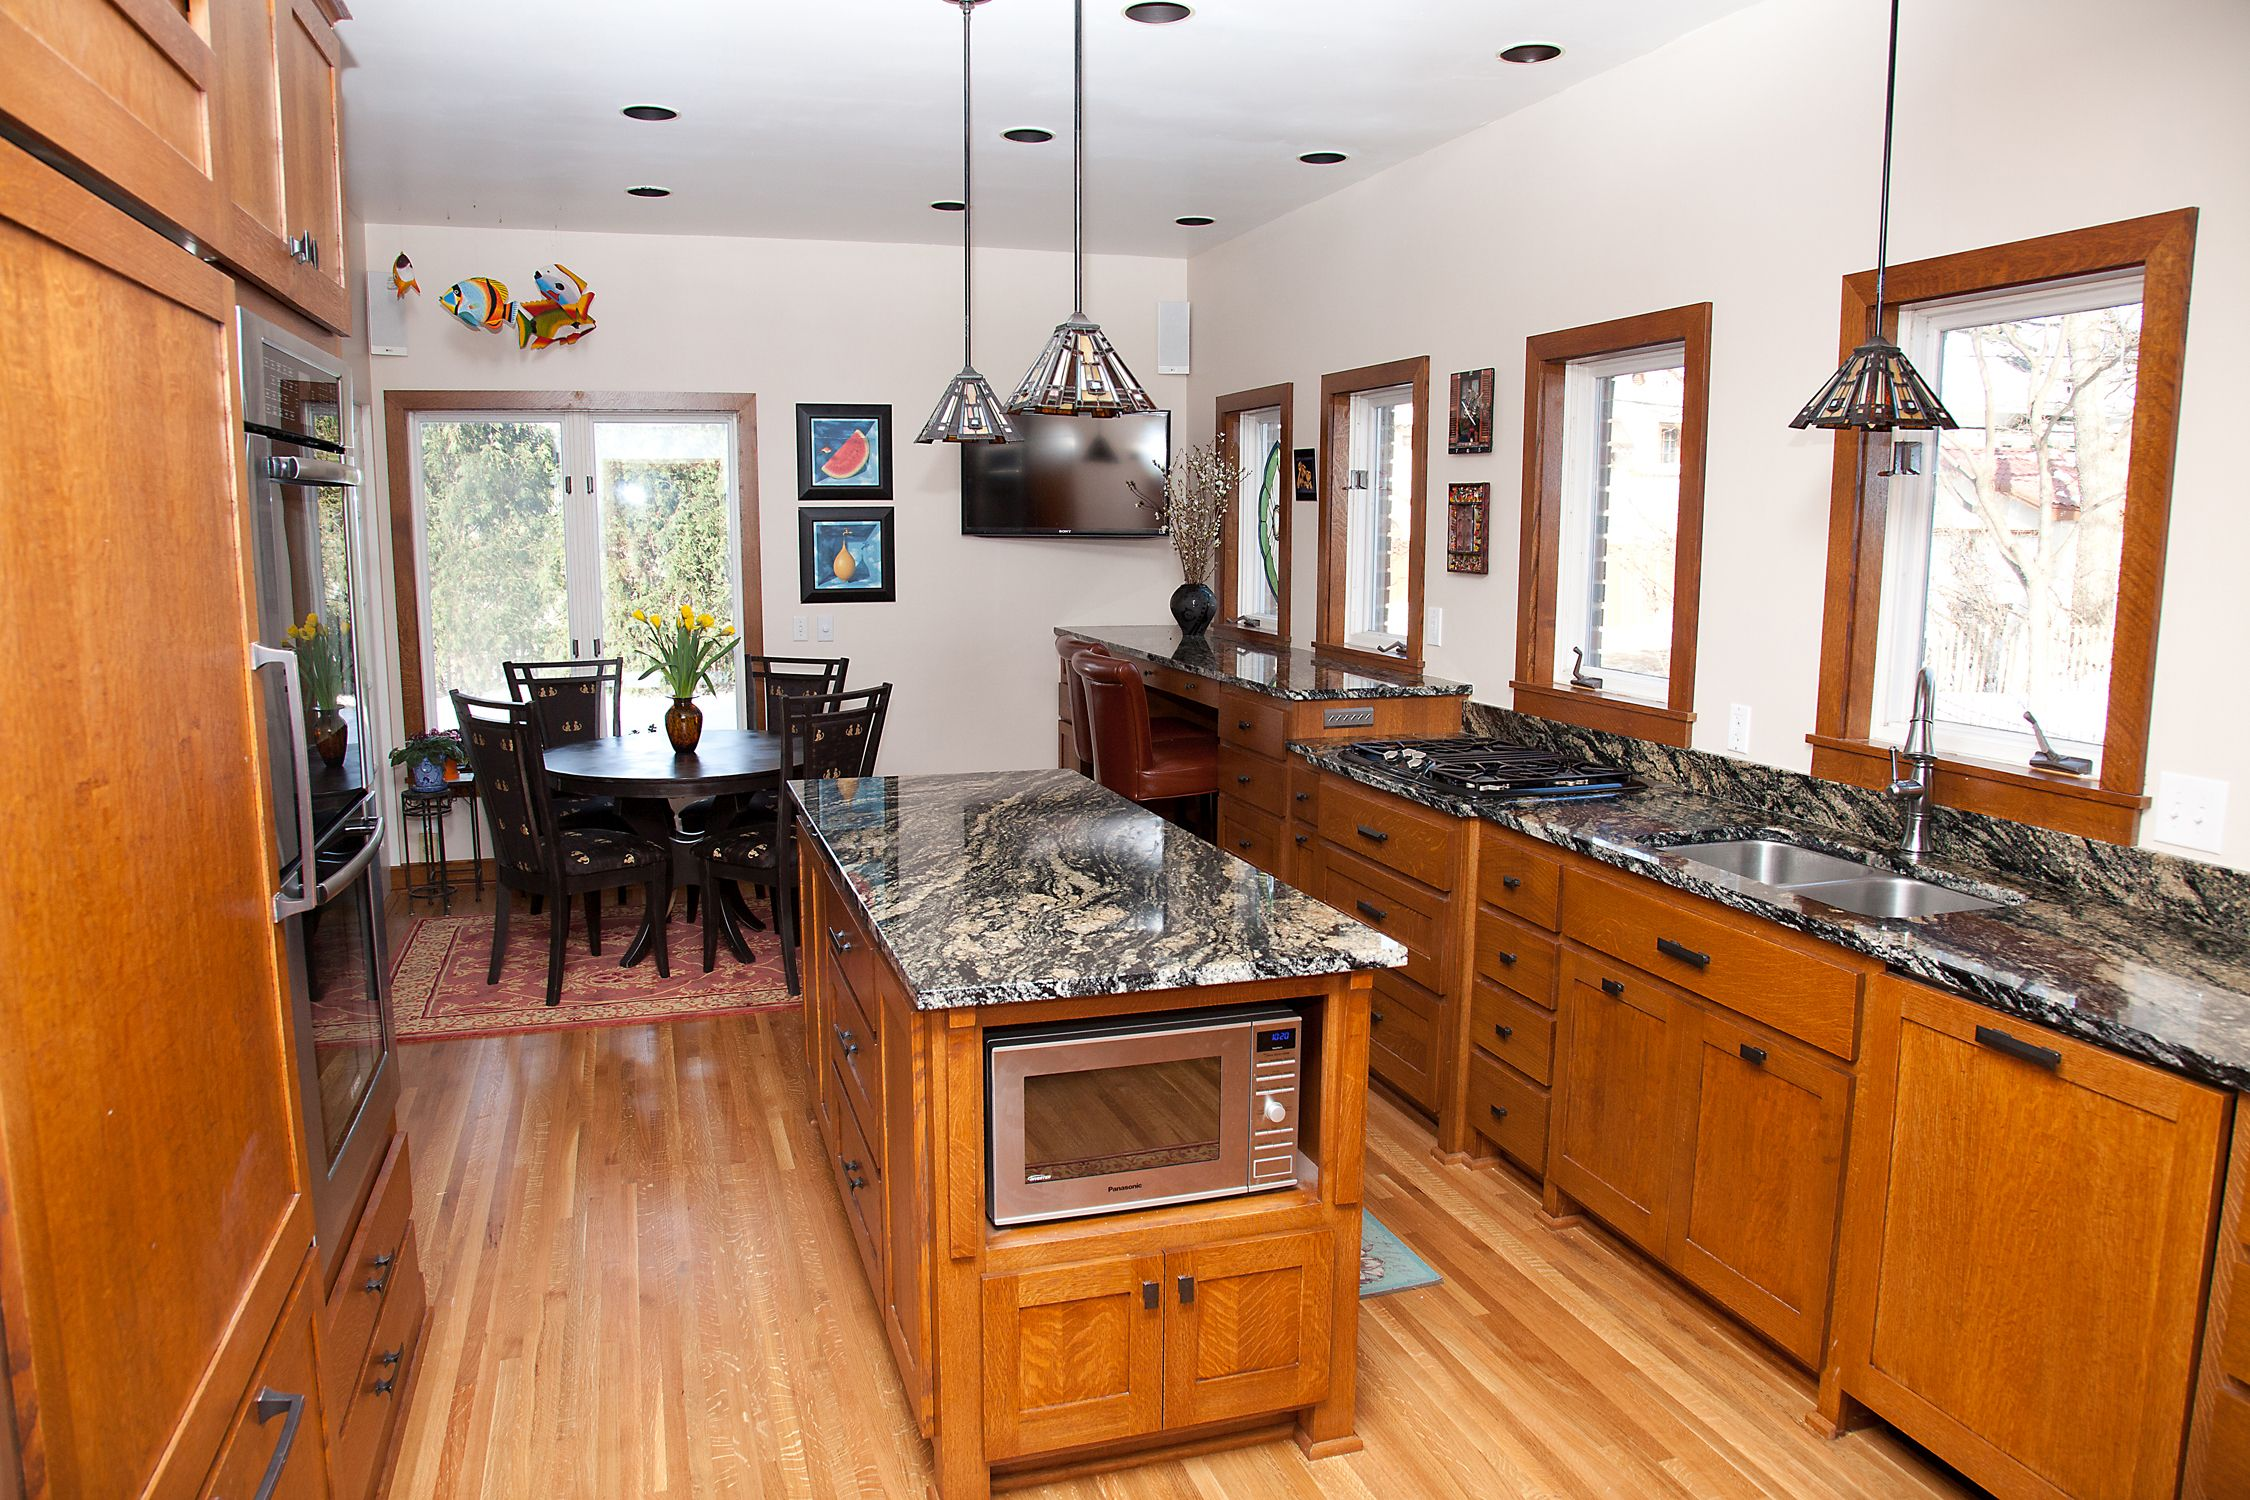 Kitchen remodel with updated island, cabinets, flooring, counter tops, and more.